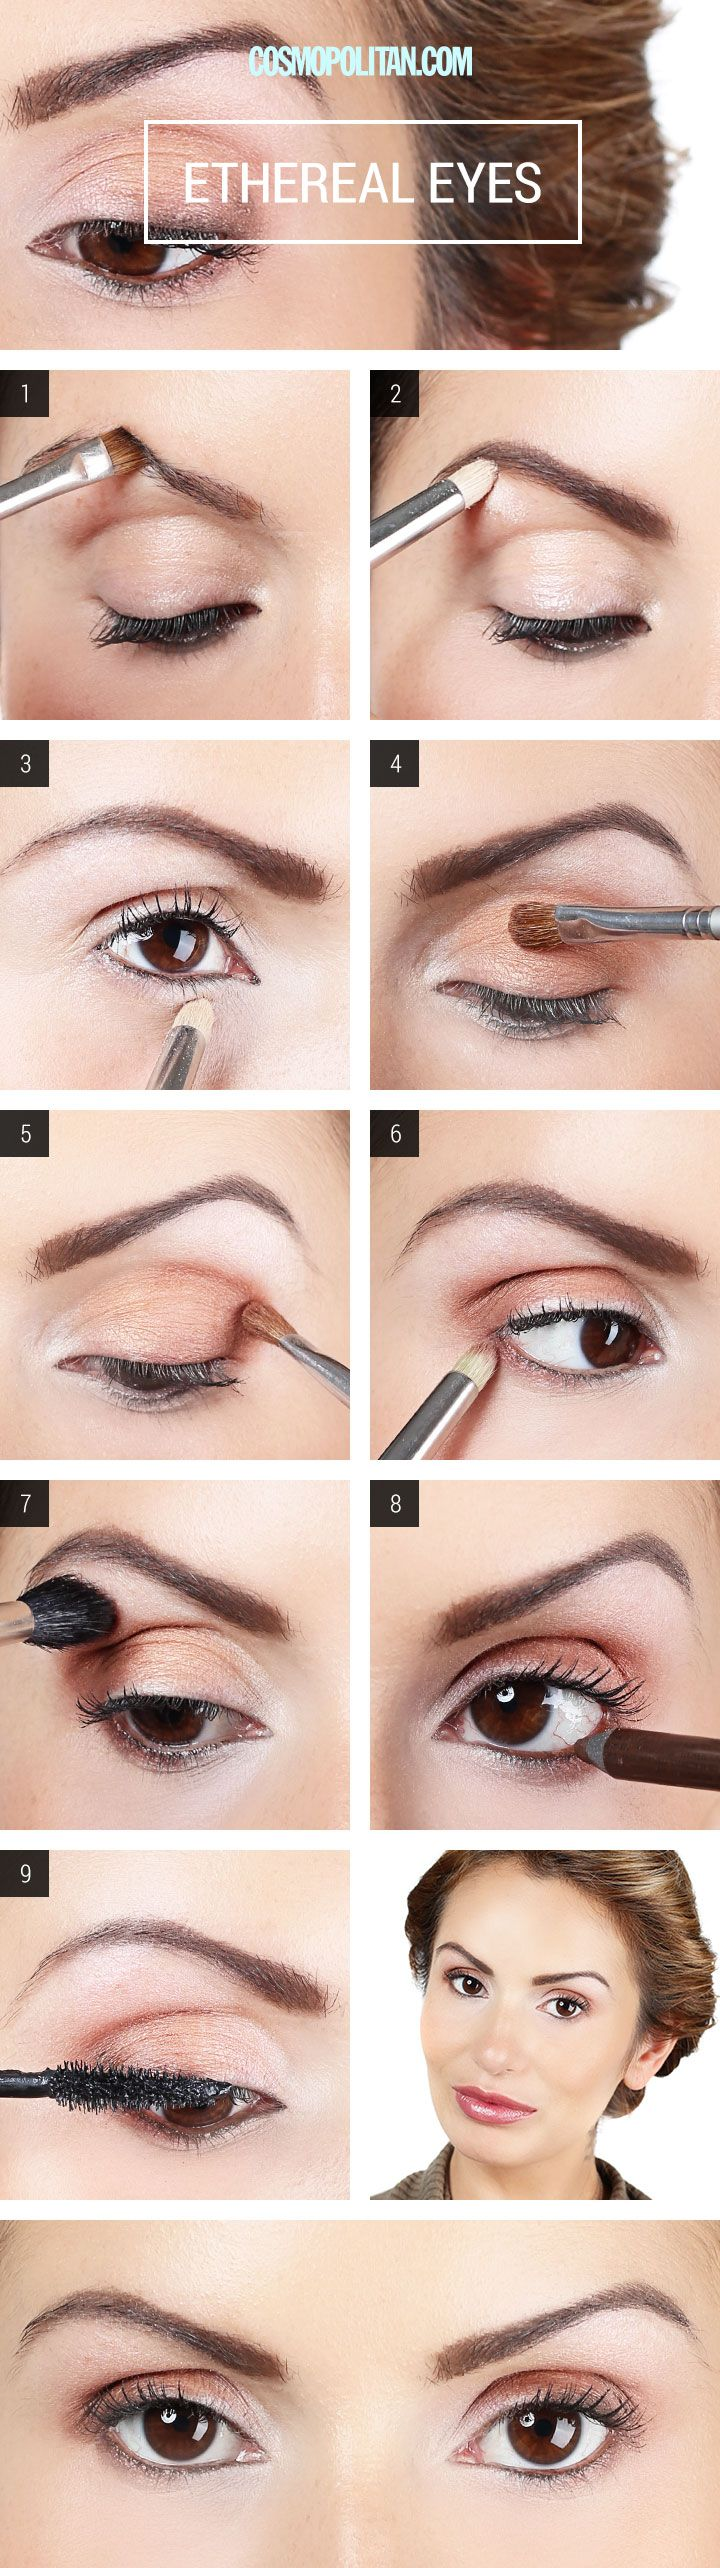 25+ Great Ideas About Ethereal Makeup On Pinterest  Light Eyebrows,  Iridescent Lipstick And Rock Makeup